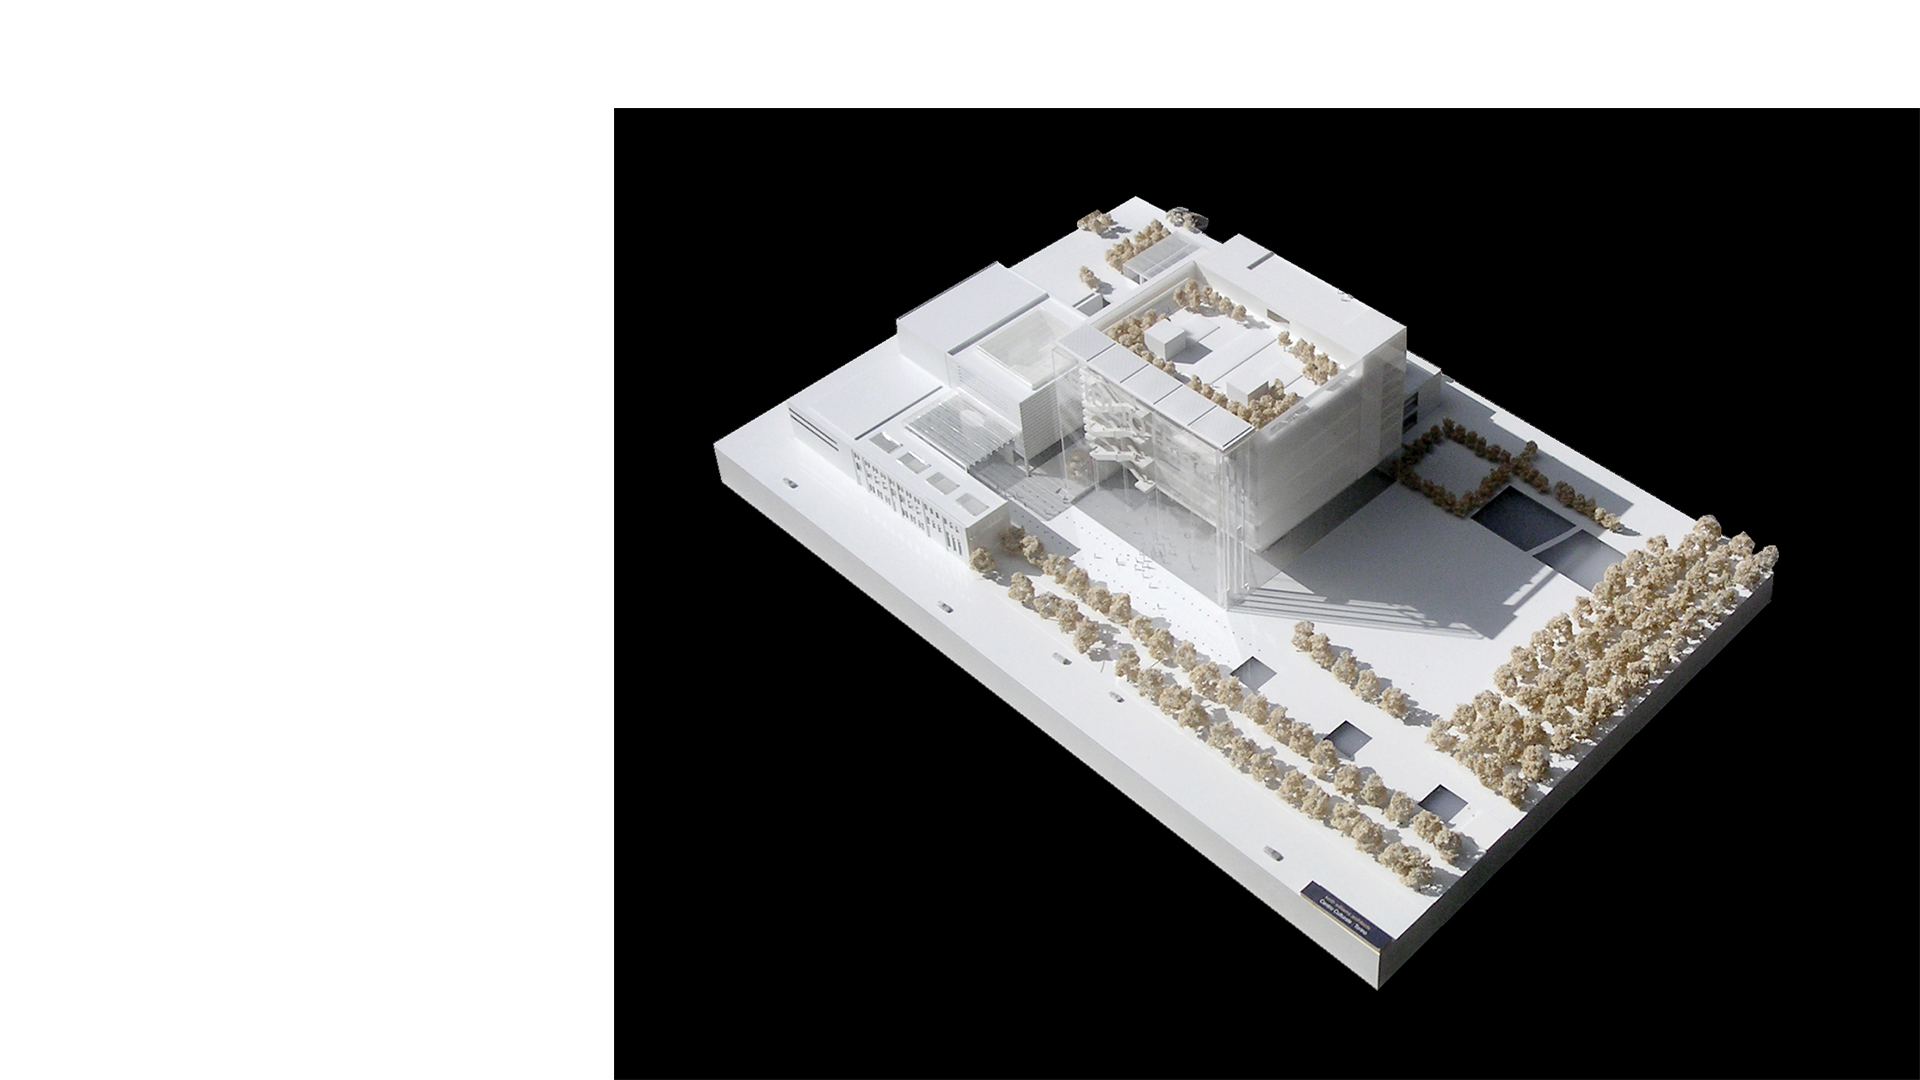 Overview of 3D model of the proposed Centro Culturale di Torino with the city library and new piazza